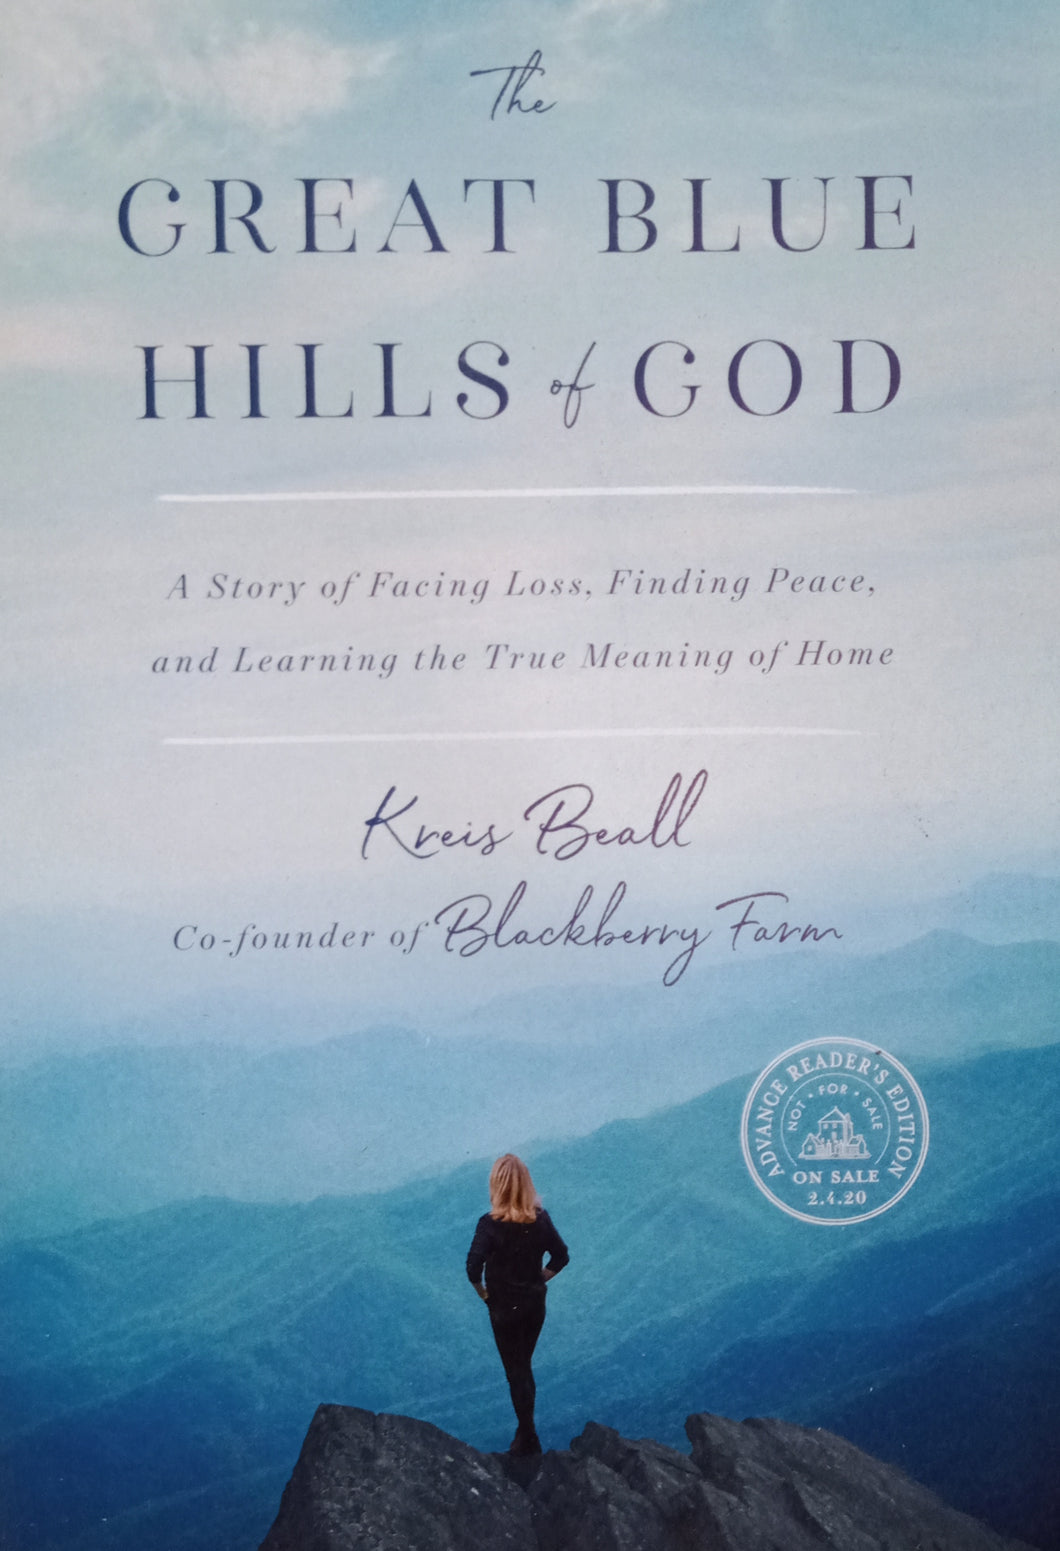 The Great Blue Hills Of God by Kreis Beall